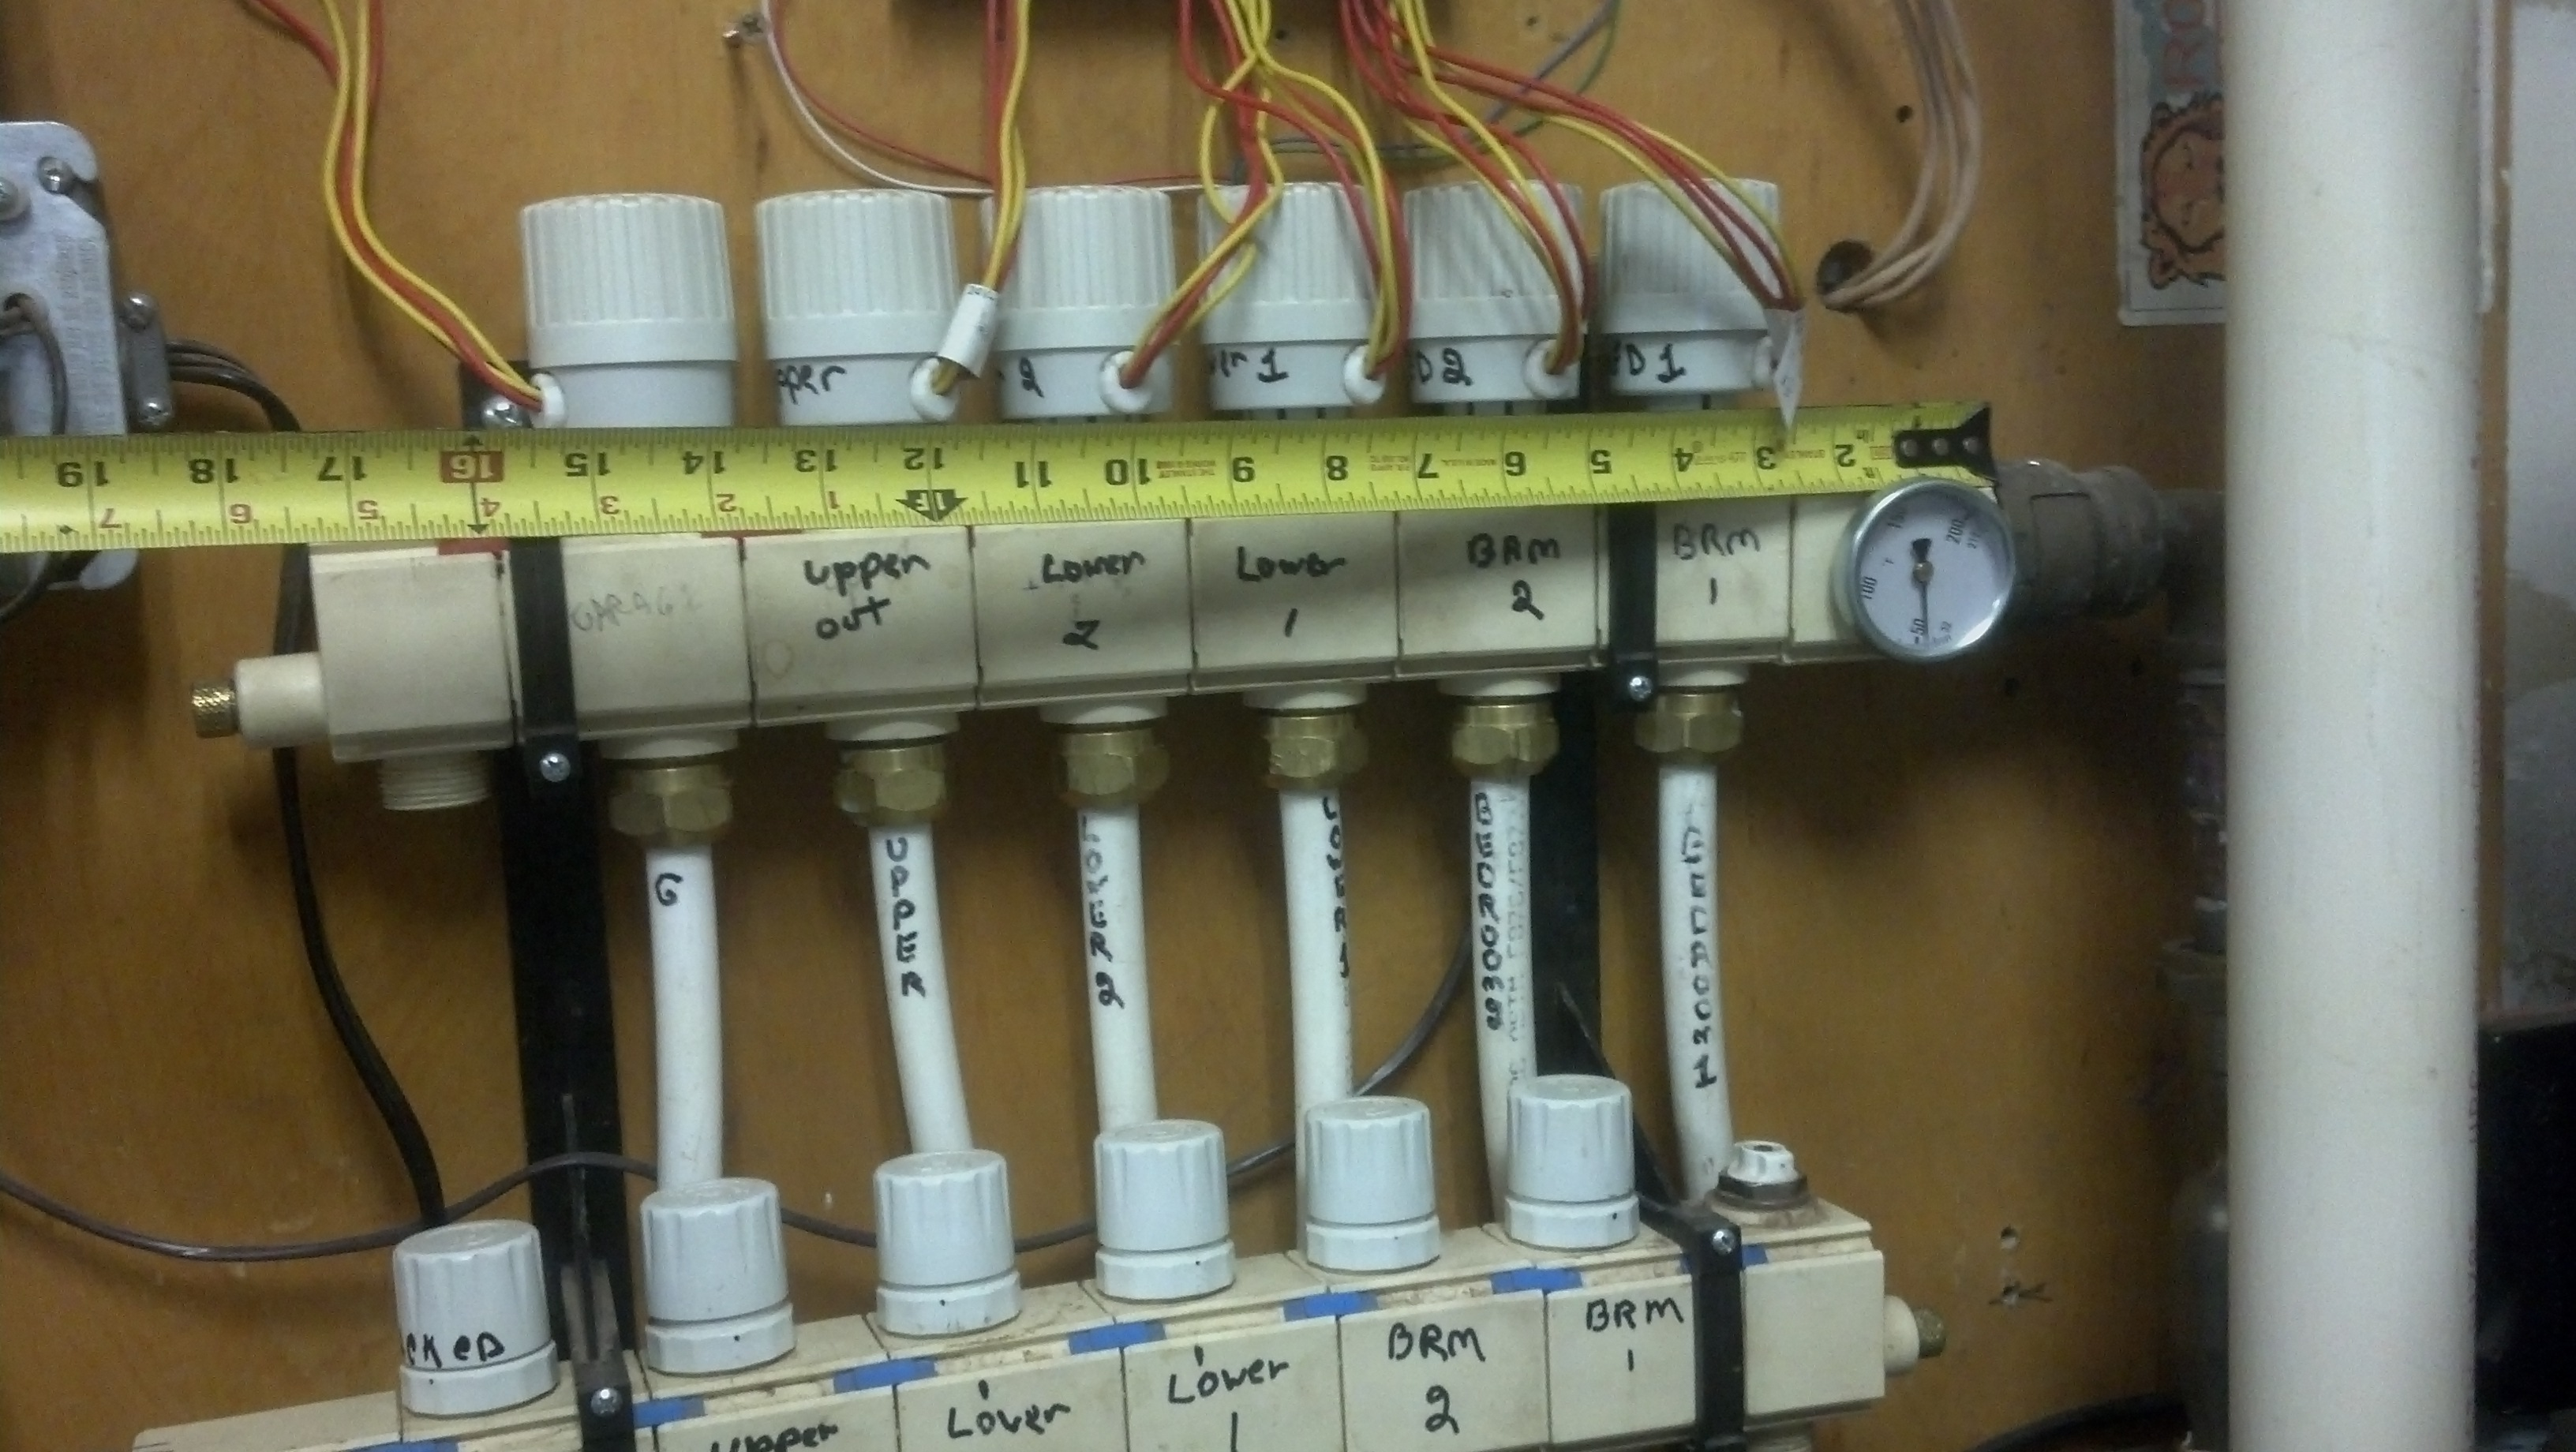 Radiant Heat Manifolds And Zone Controls Heating Help